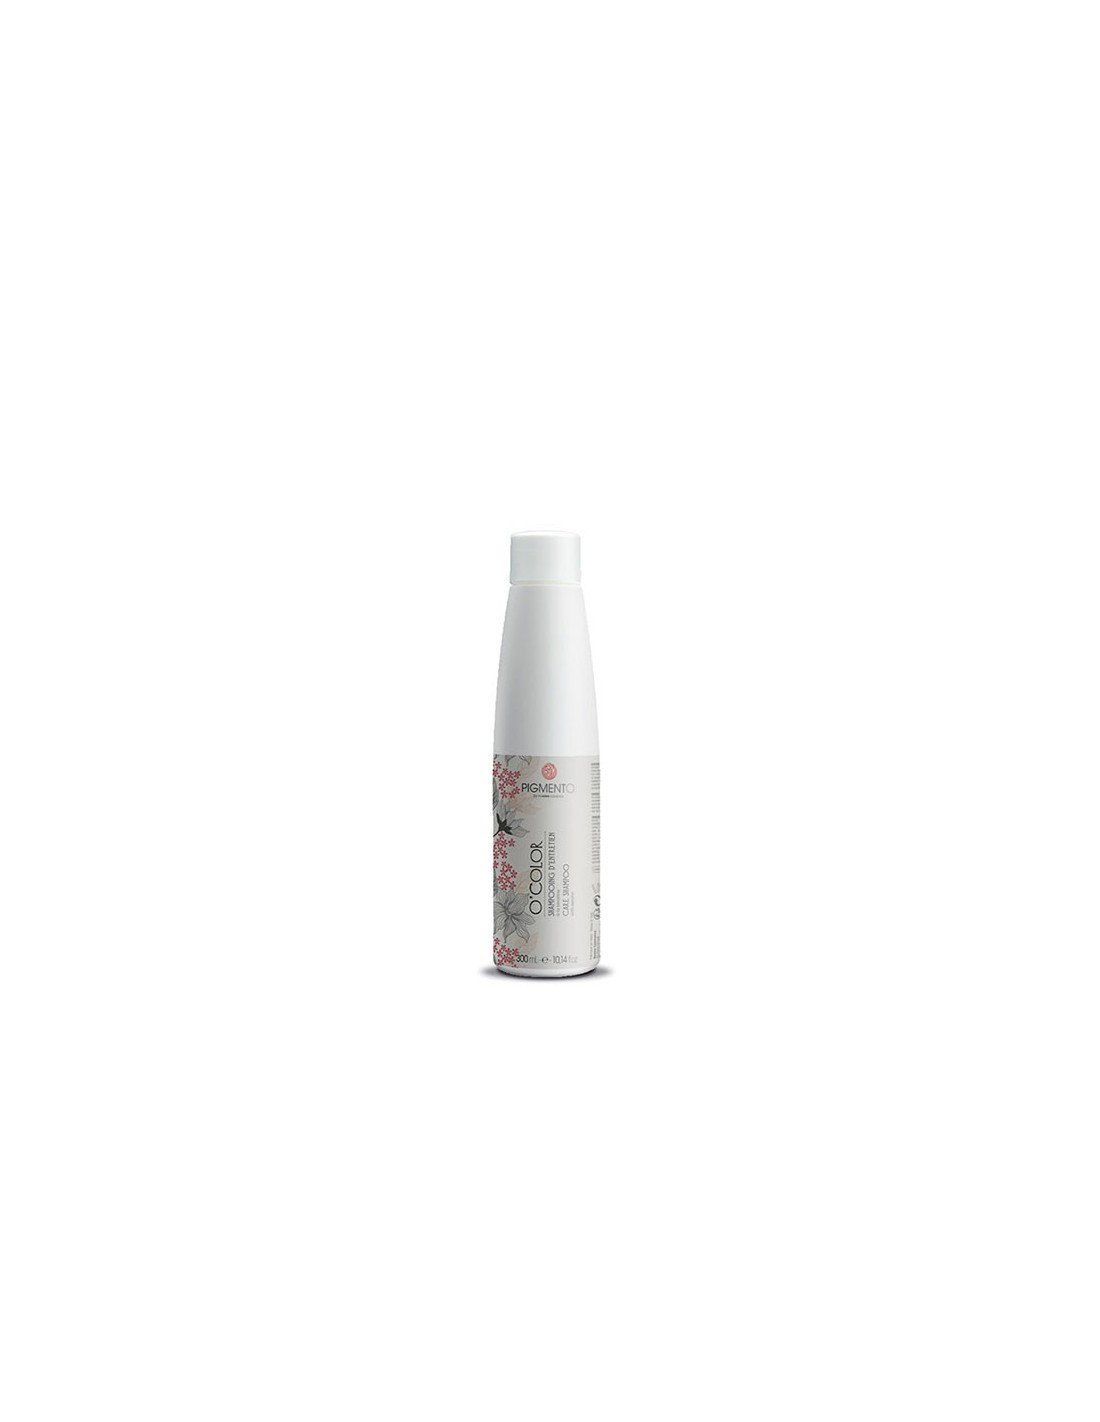 O'COLOR Shampooing 300ml